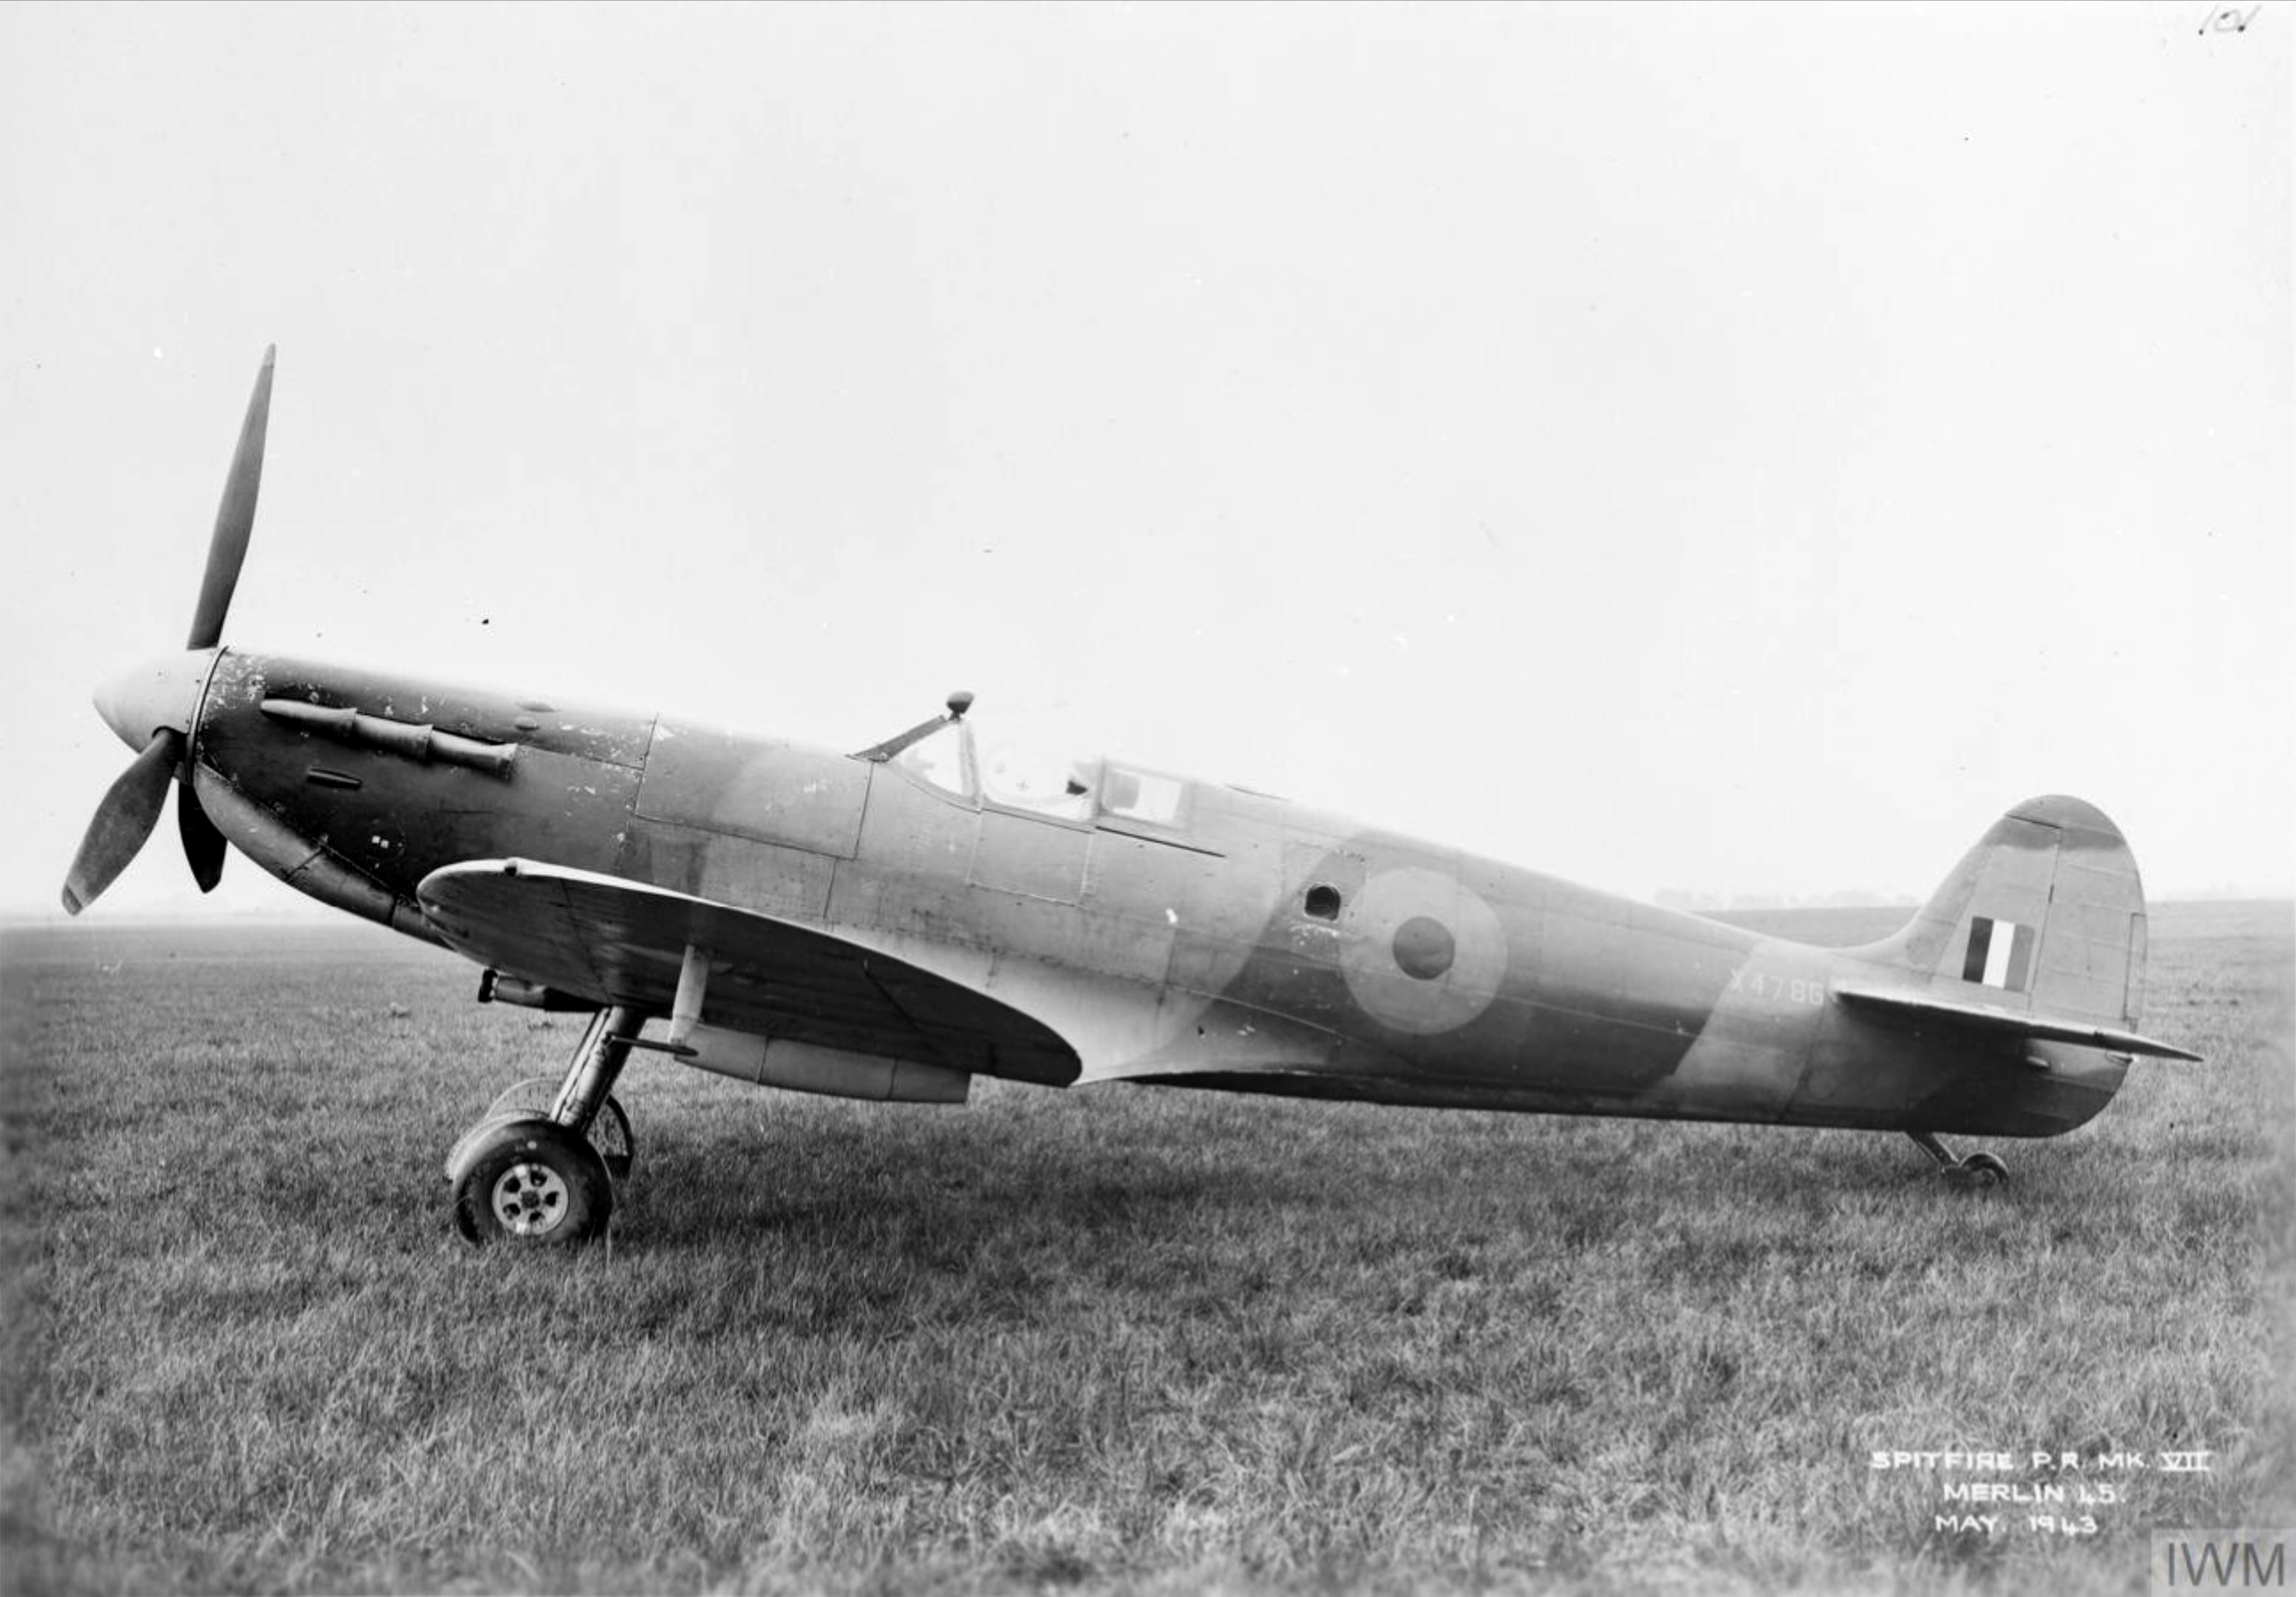 Spitfire PR7 Prototype X4786 side profile view England May 1943 IWM MH5108